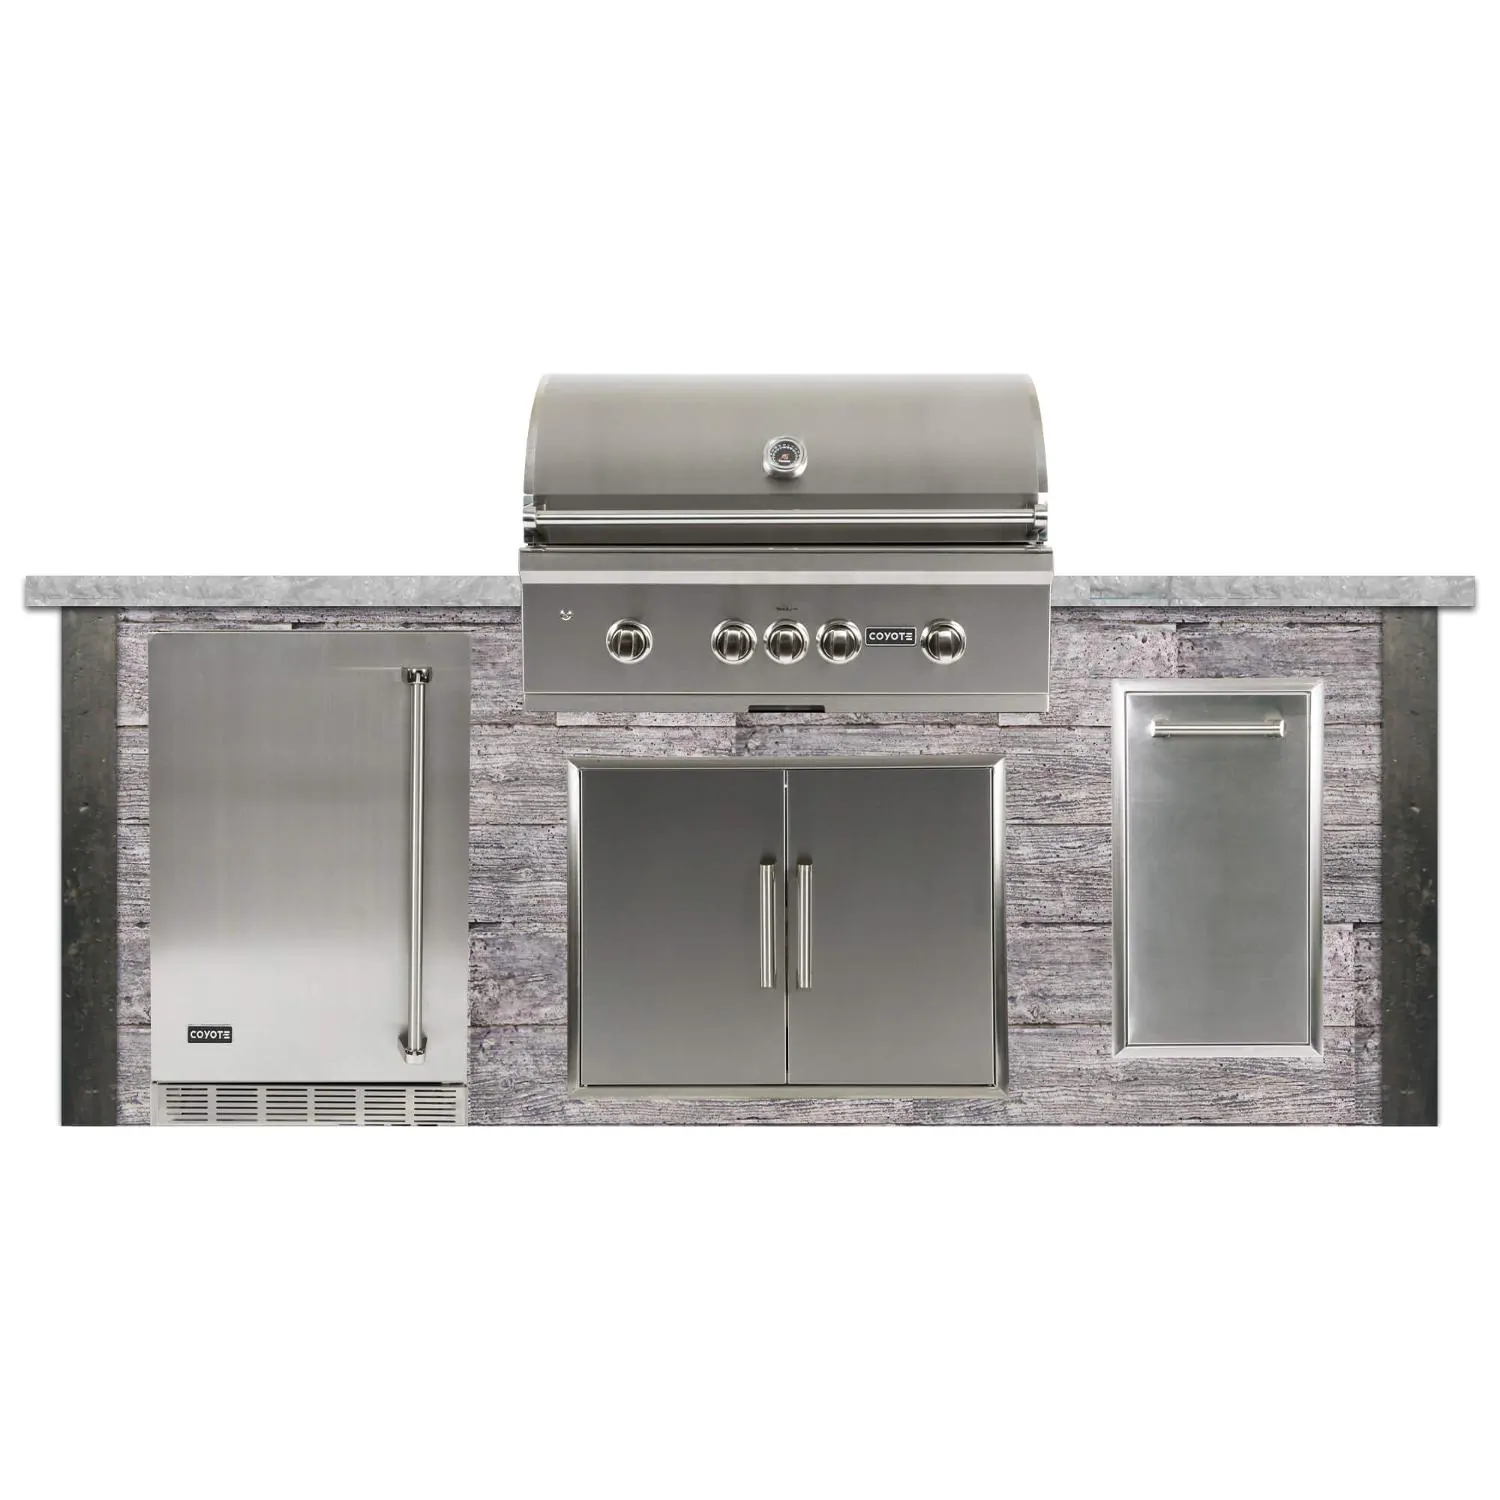 Coyote Ready-To-Assemble 8 Ft Outdoor Kitchen Island With 36-Inch S-Series Natural Gas Grill (Ships As Propane With Conversion Fittings) - Weathered Wood/Stone Gray - RTAC-G8-WG-C2SL36NG